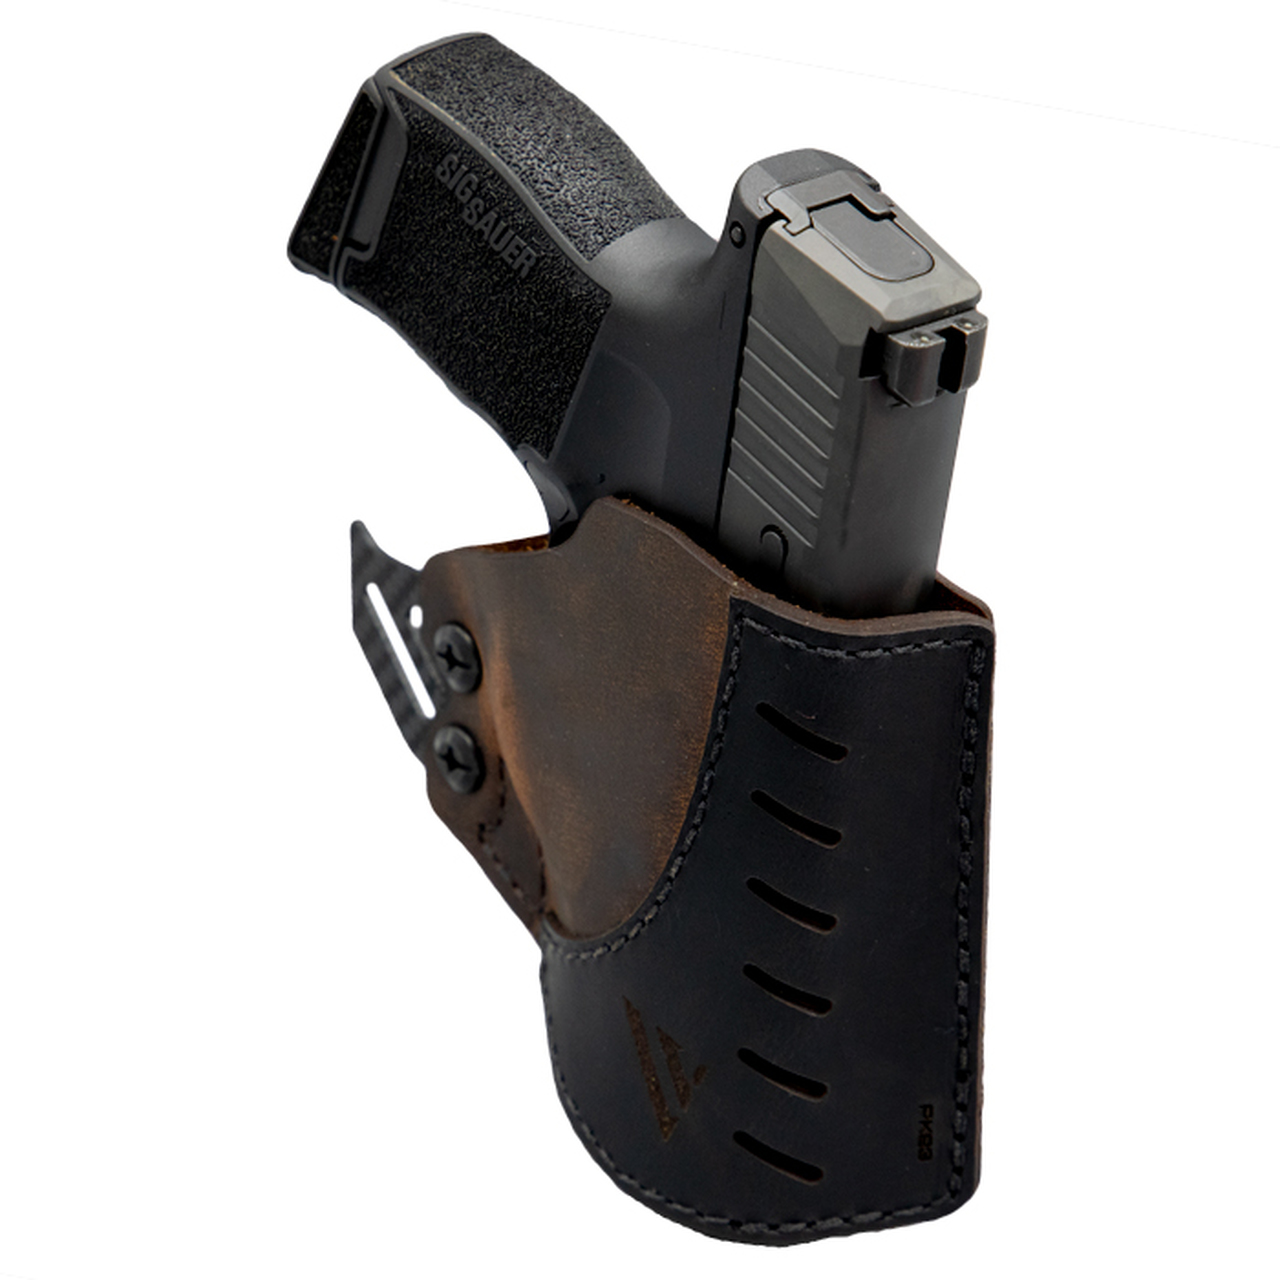 Versacarry Adjustable Pocket Holster (Image: Versacarry)